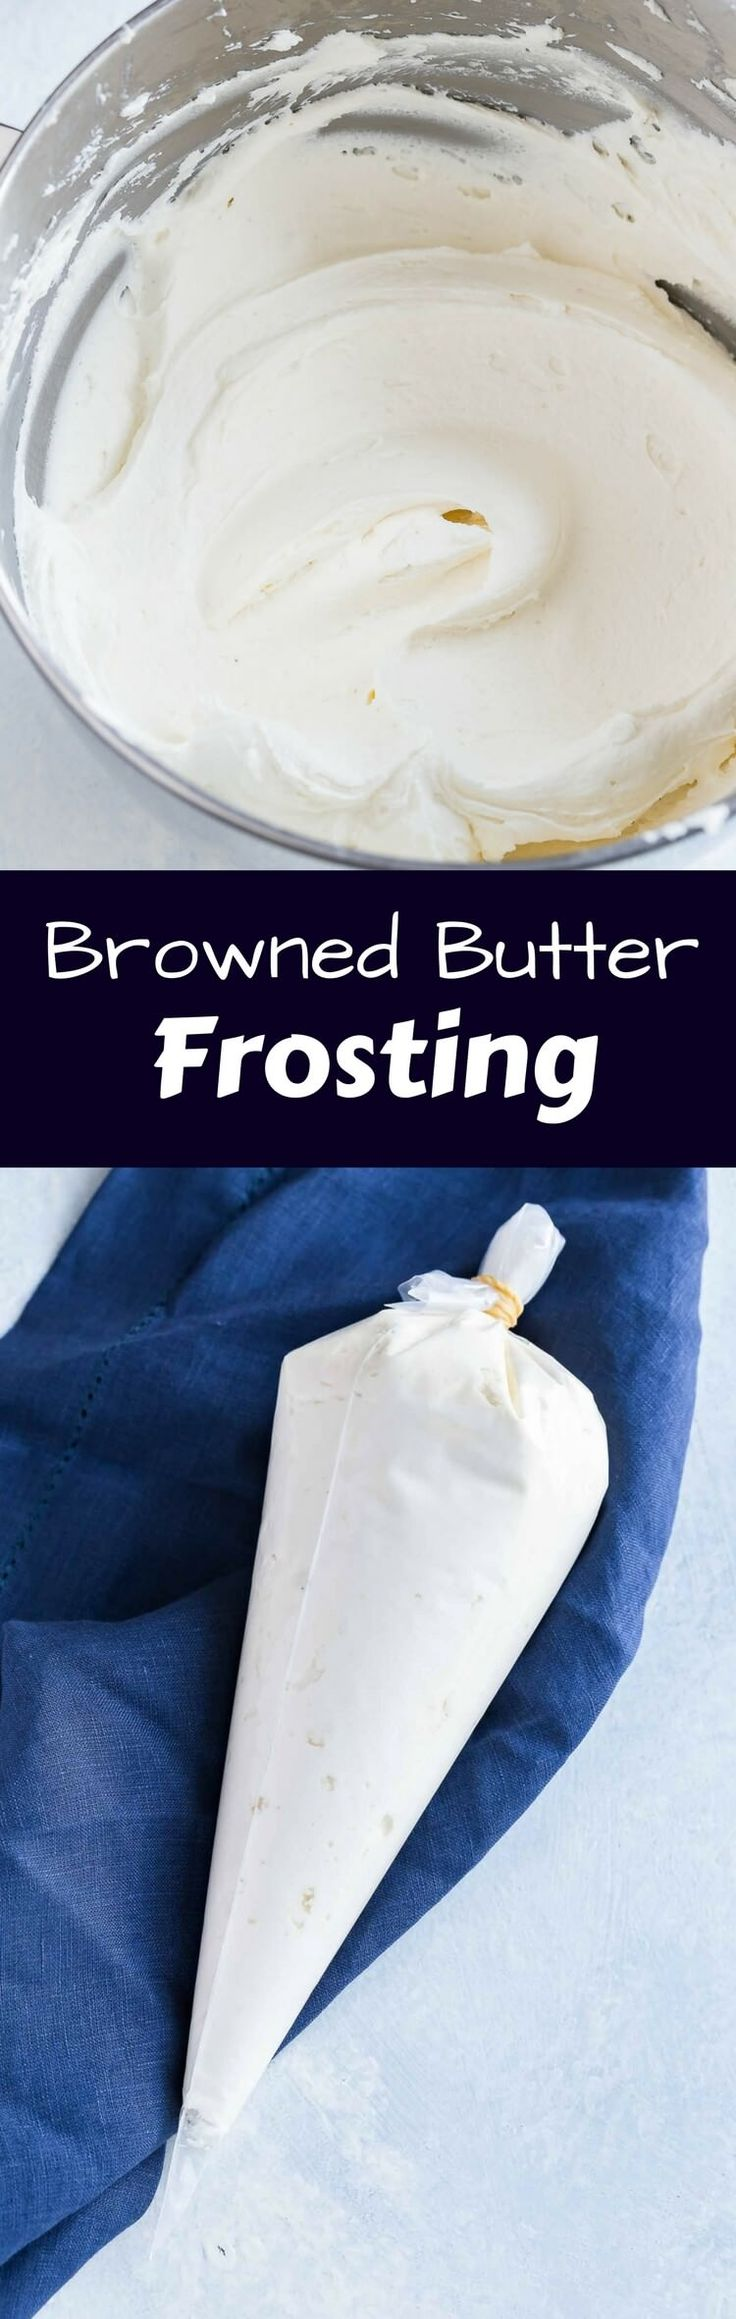 Browned Butter Frosting is made entirely from scratch and it's positively sensational. This simple recipe will make you want frosting on everything! via @introvertbaker